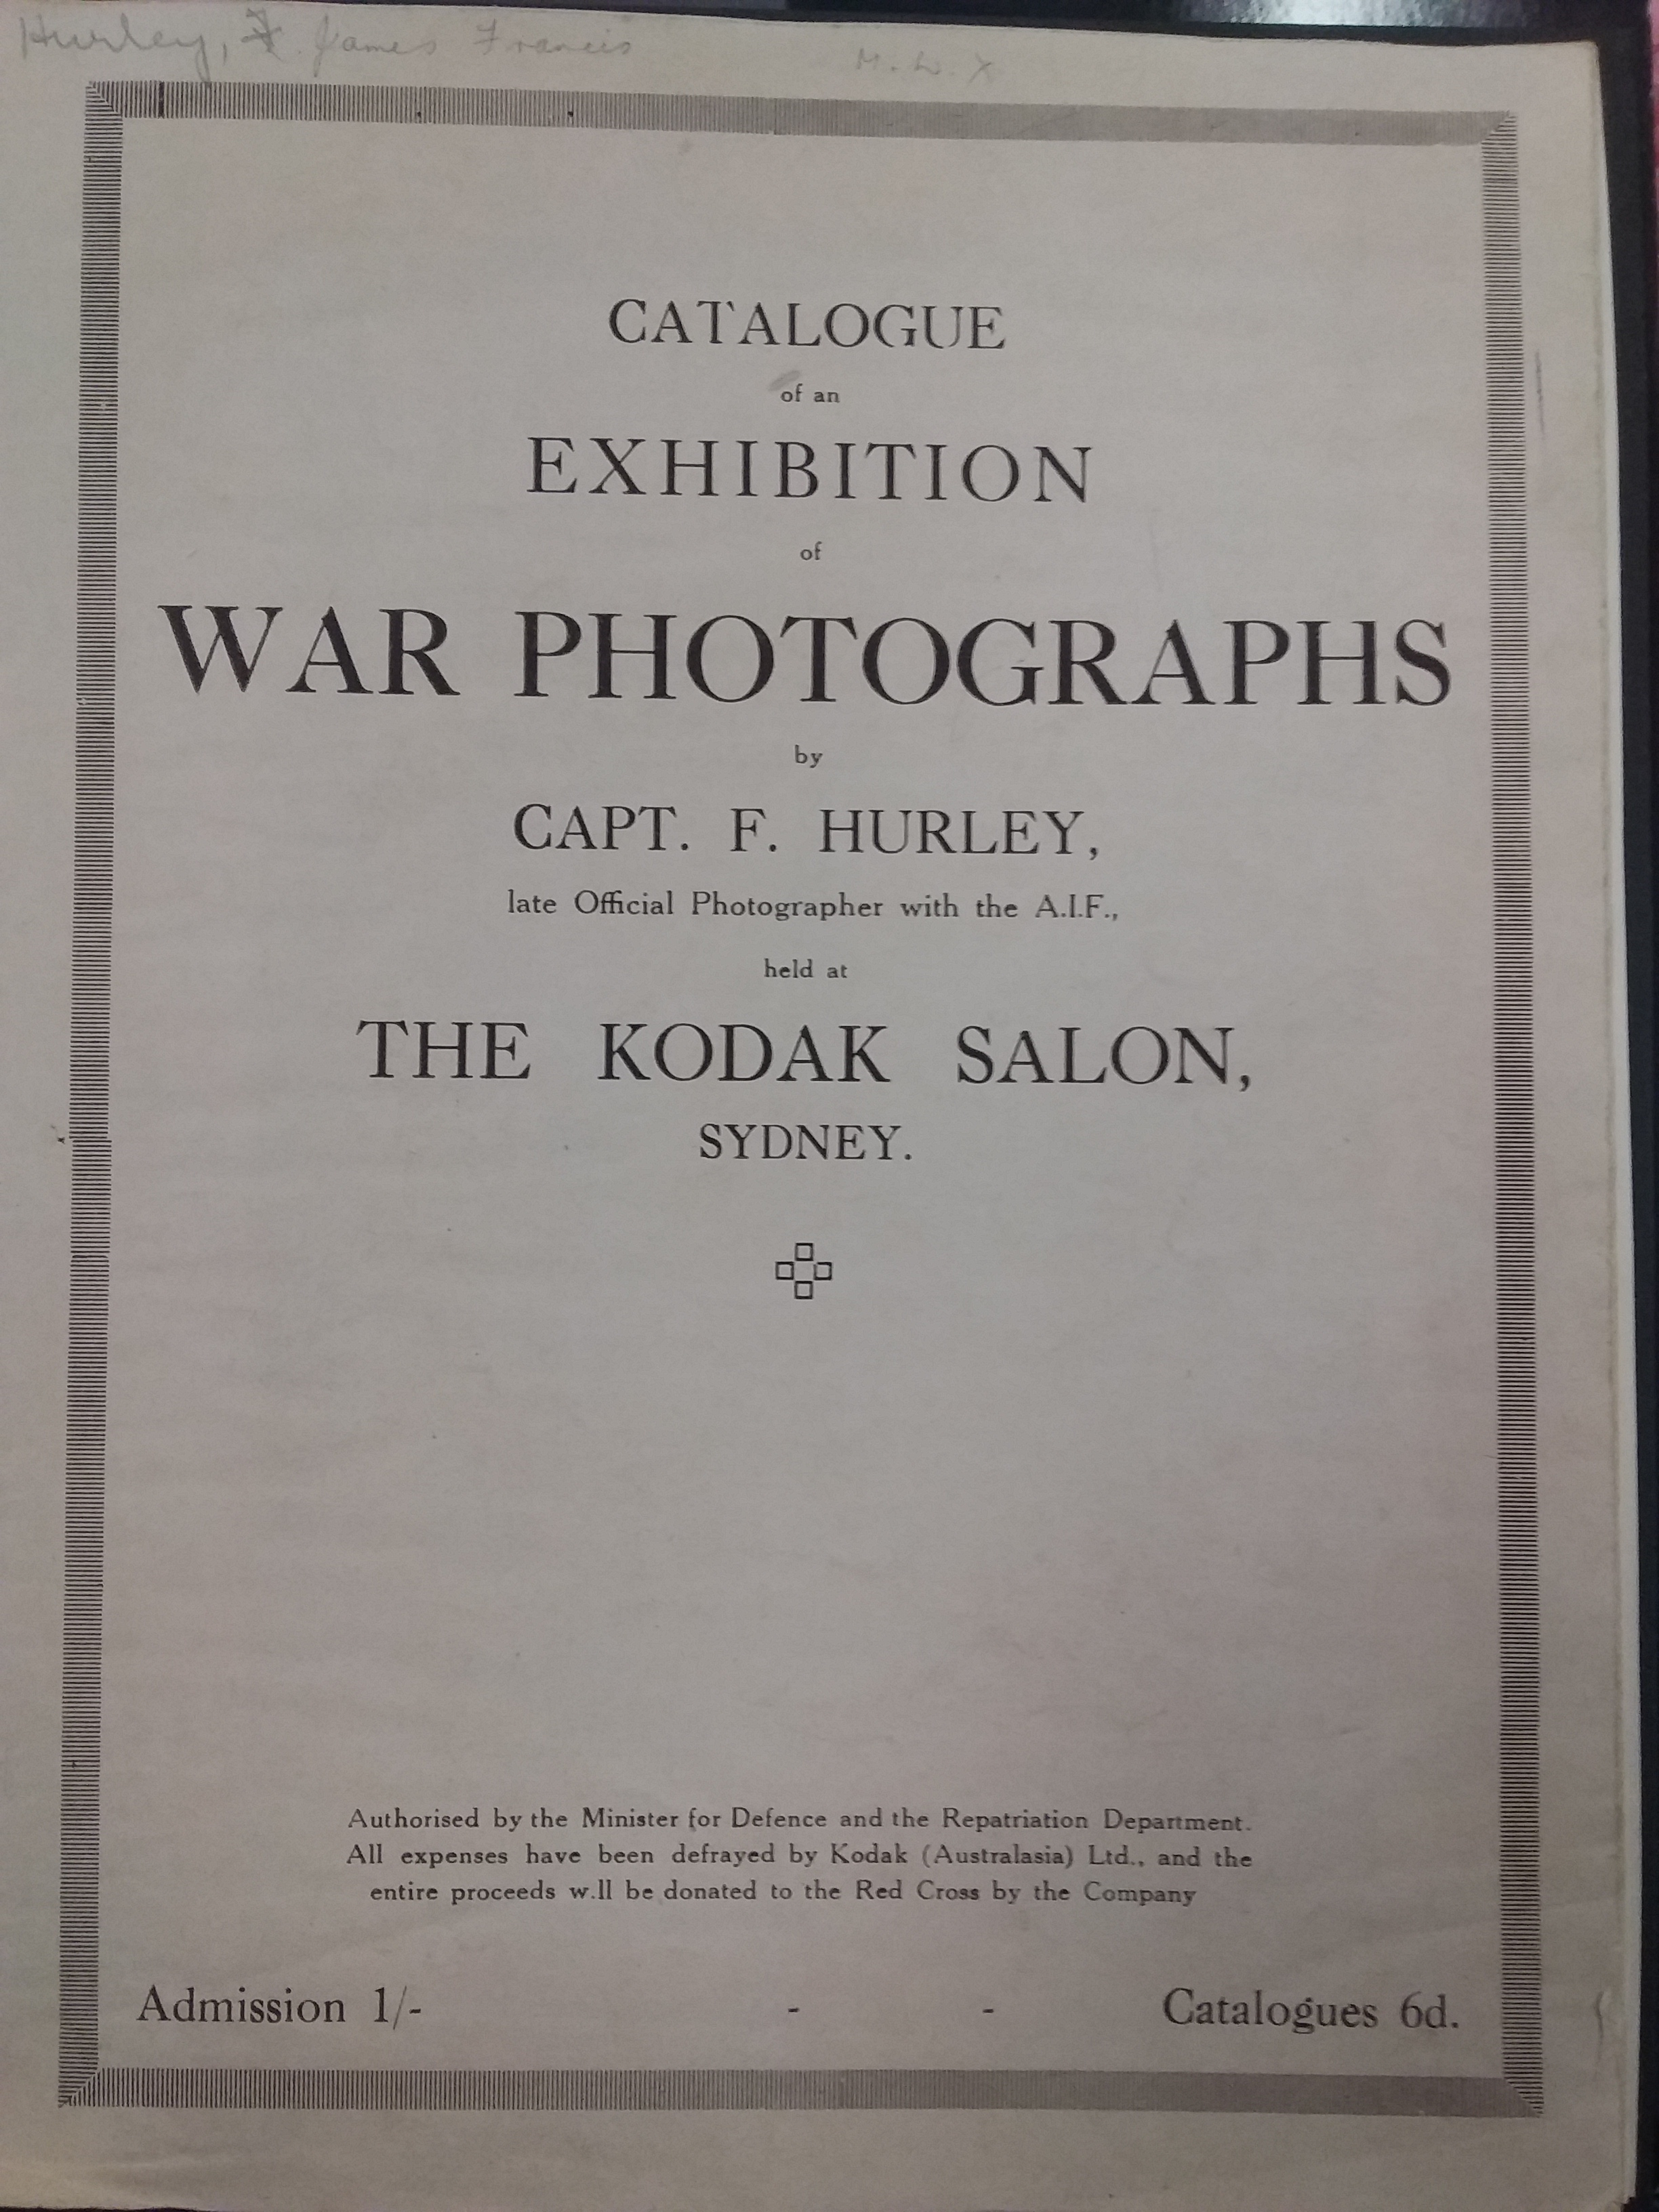 Catalogue of an exhibition of war photographs by Captain F. Hurley